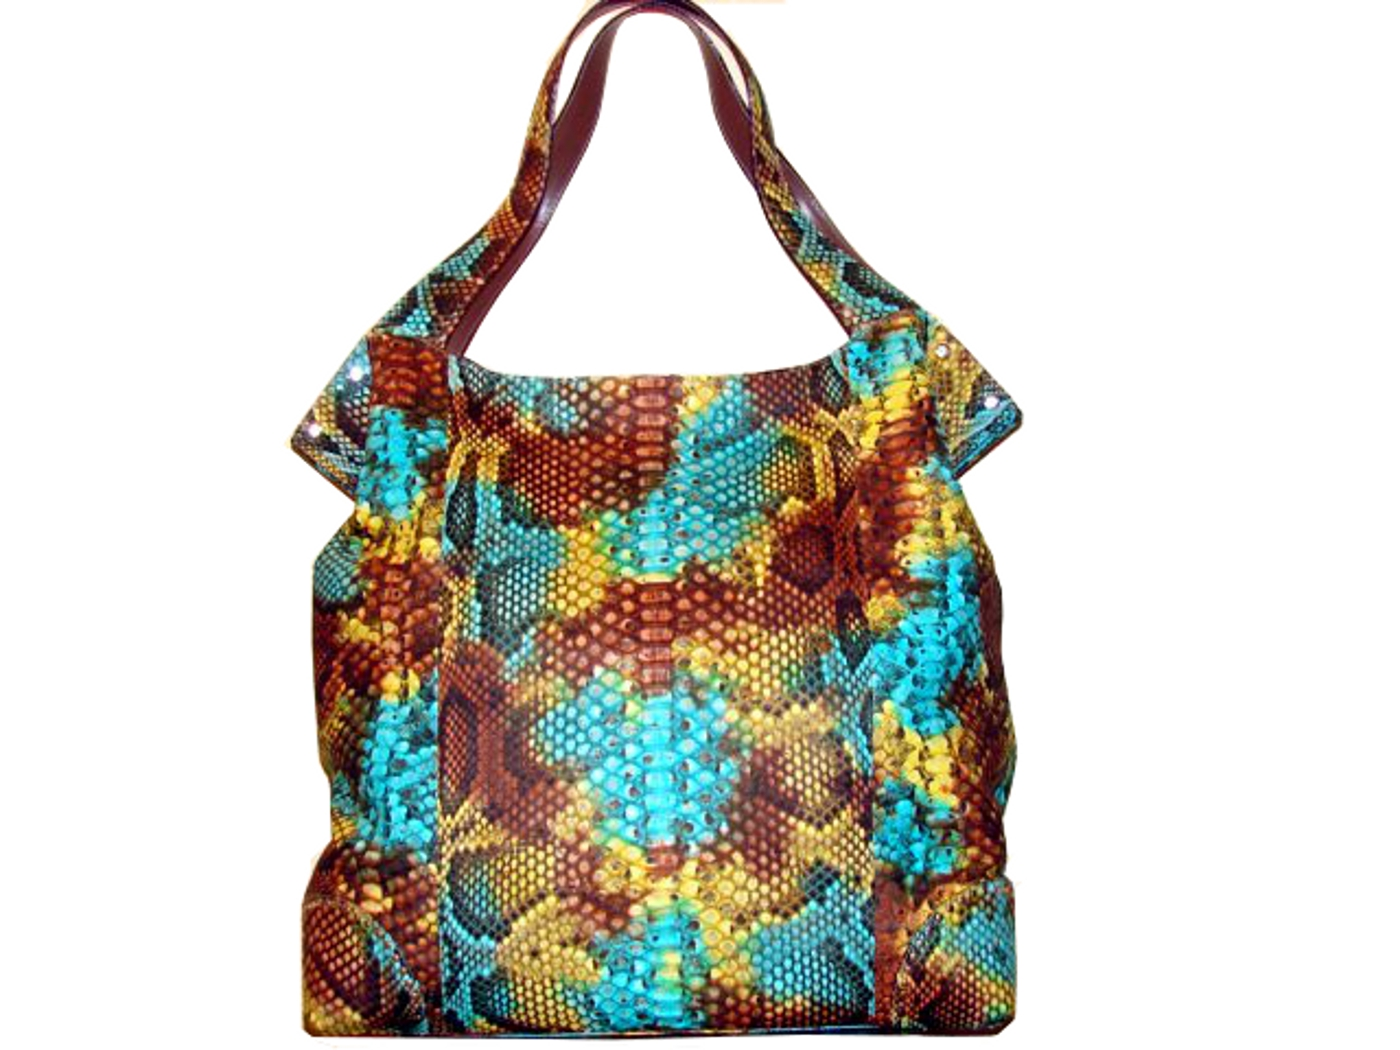 Braschi Handbag Autunno Color in Genuine Python Leather!